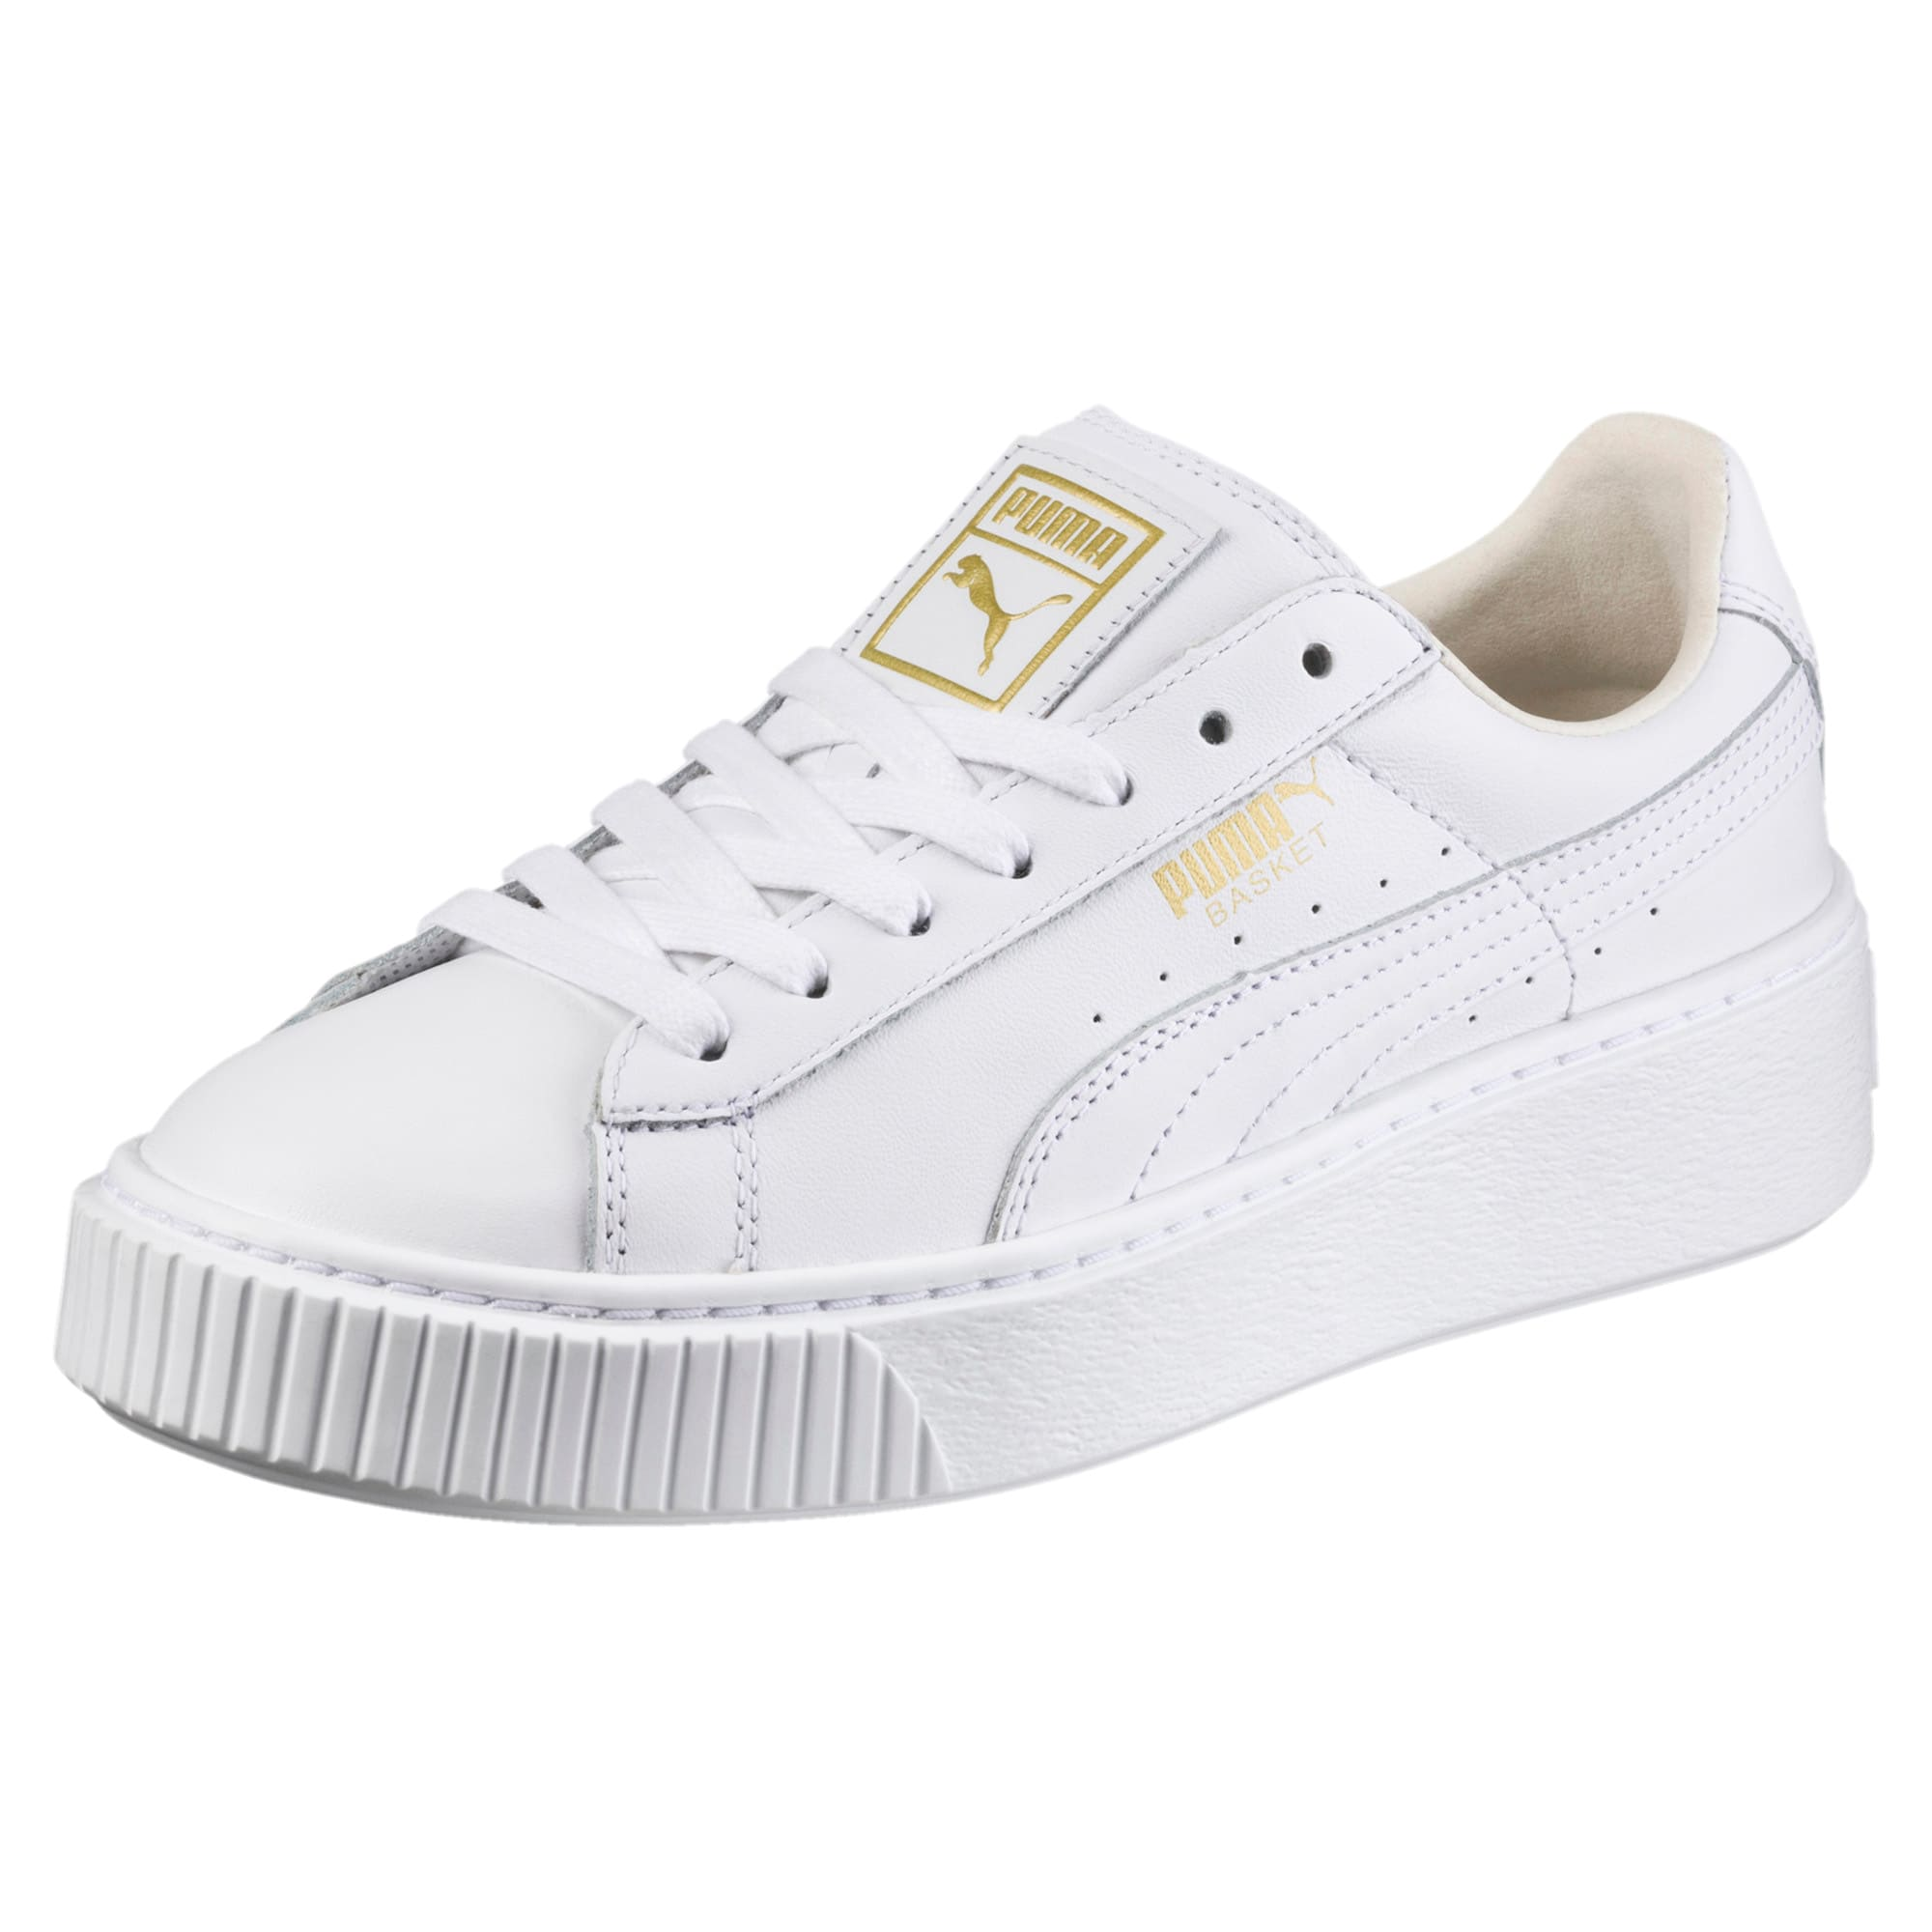 best sneakers b1c4f d6f8a Basket Platform Core Women's Sneakers